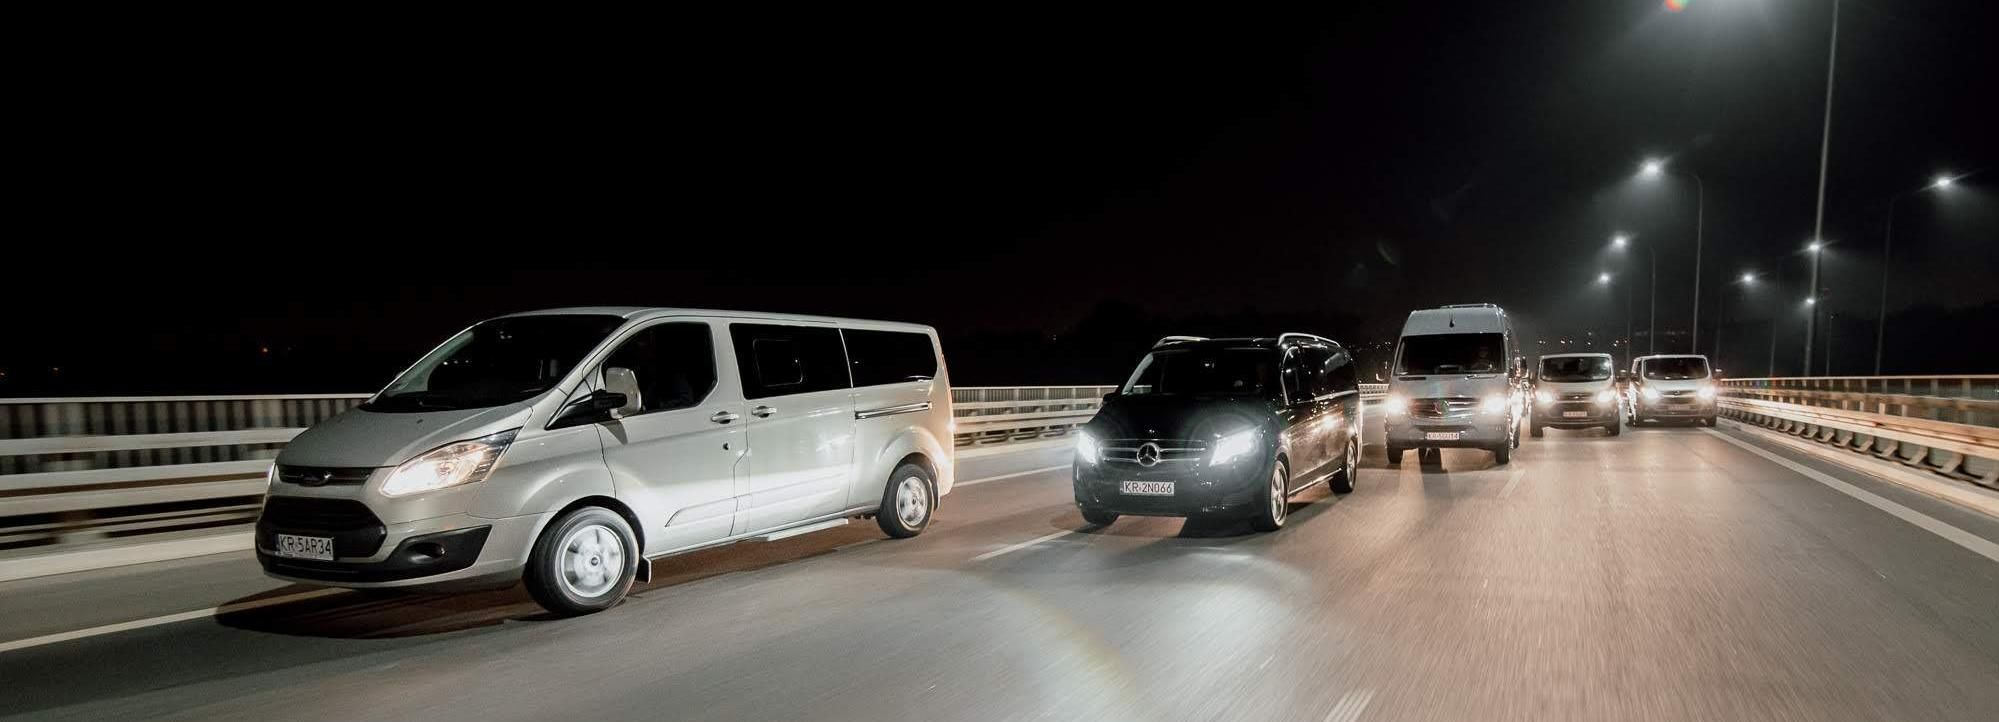 Katowice Airport: Private Transfer to or from Krakow